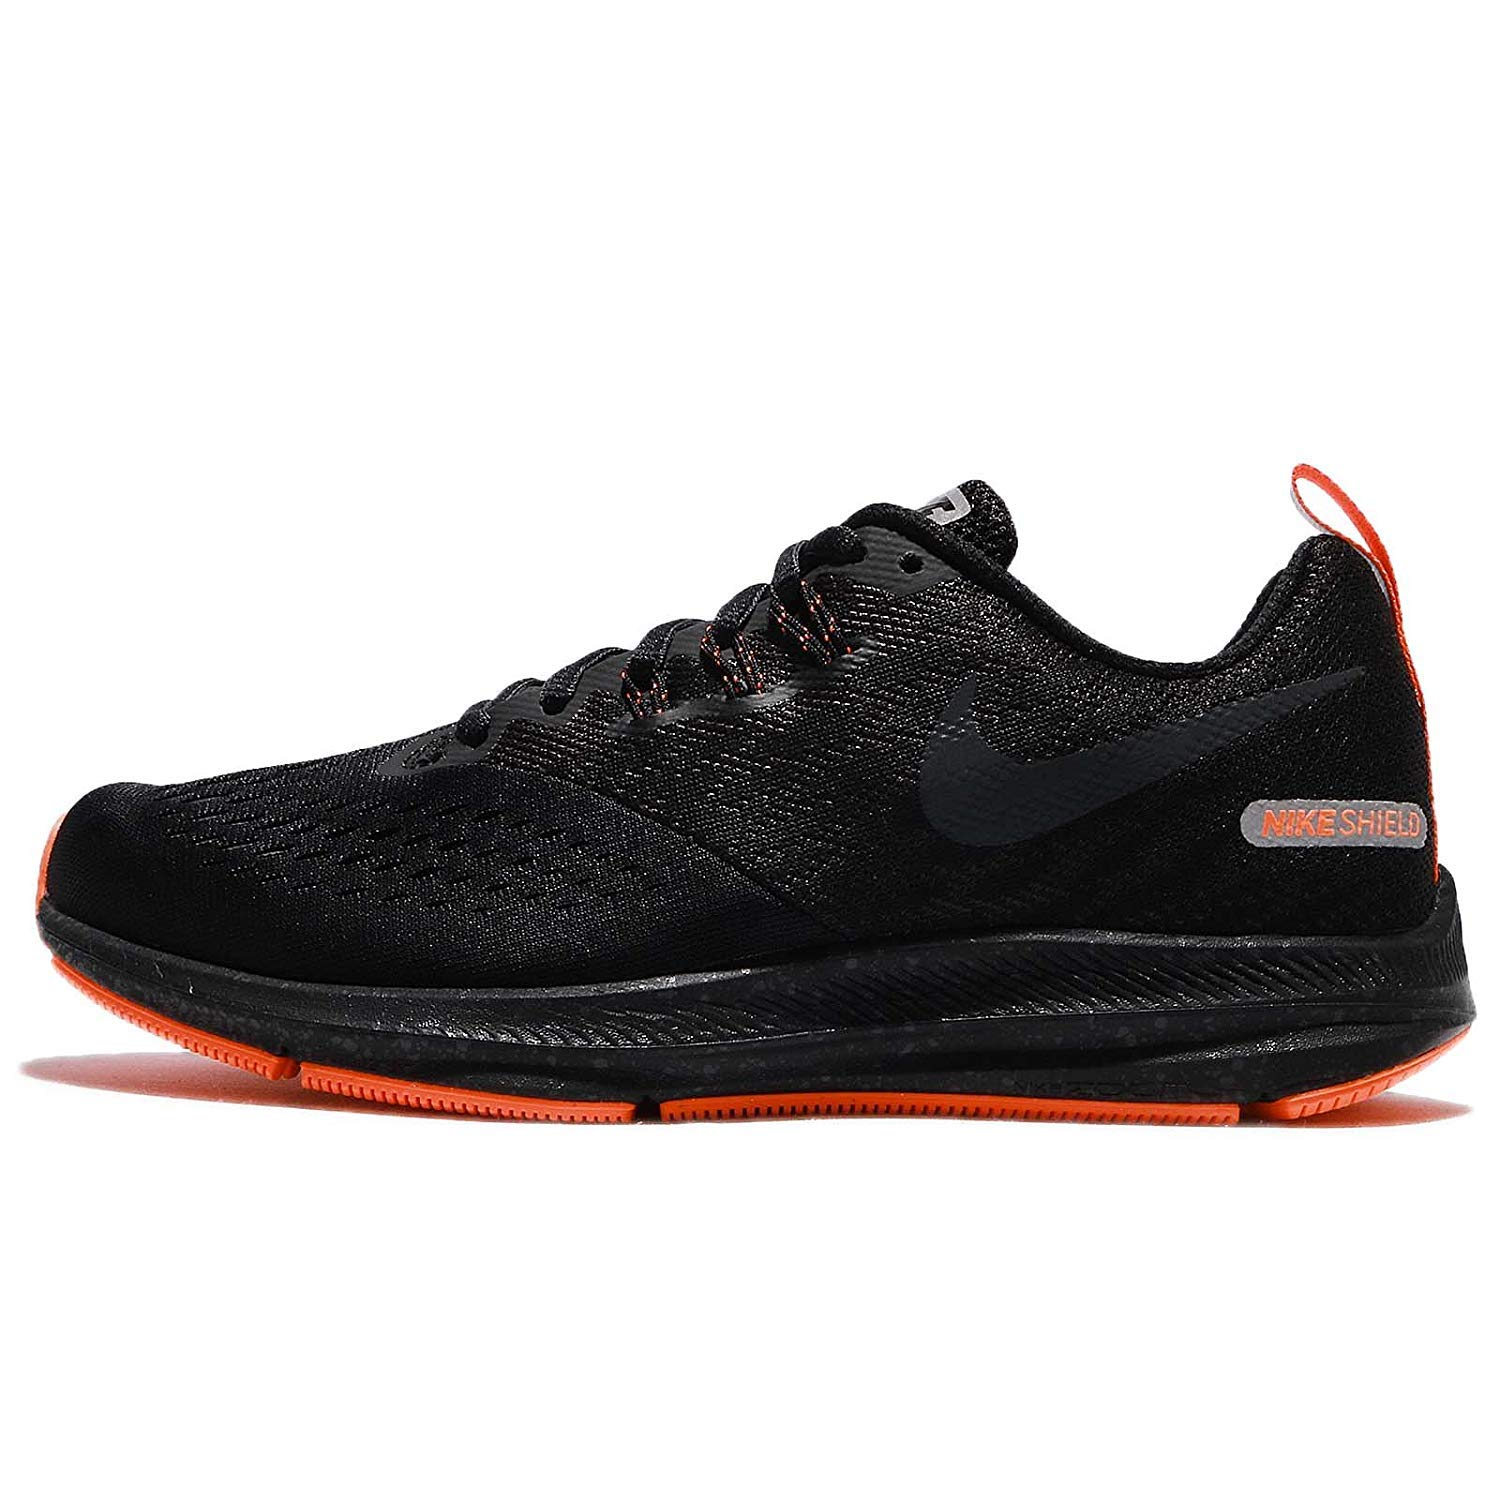 Black Anthracite-anthracite Nike Women's Zoom Winflo 4 Running shoes